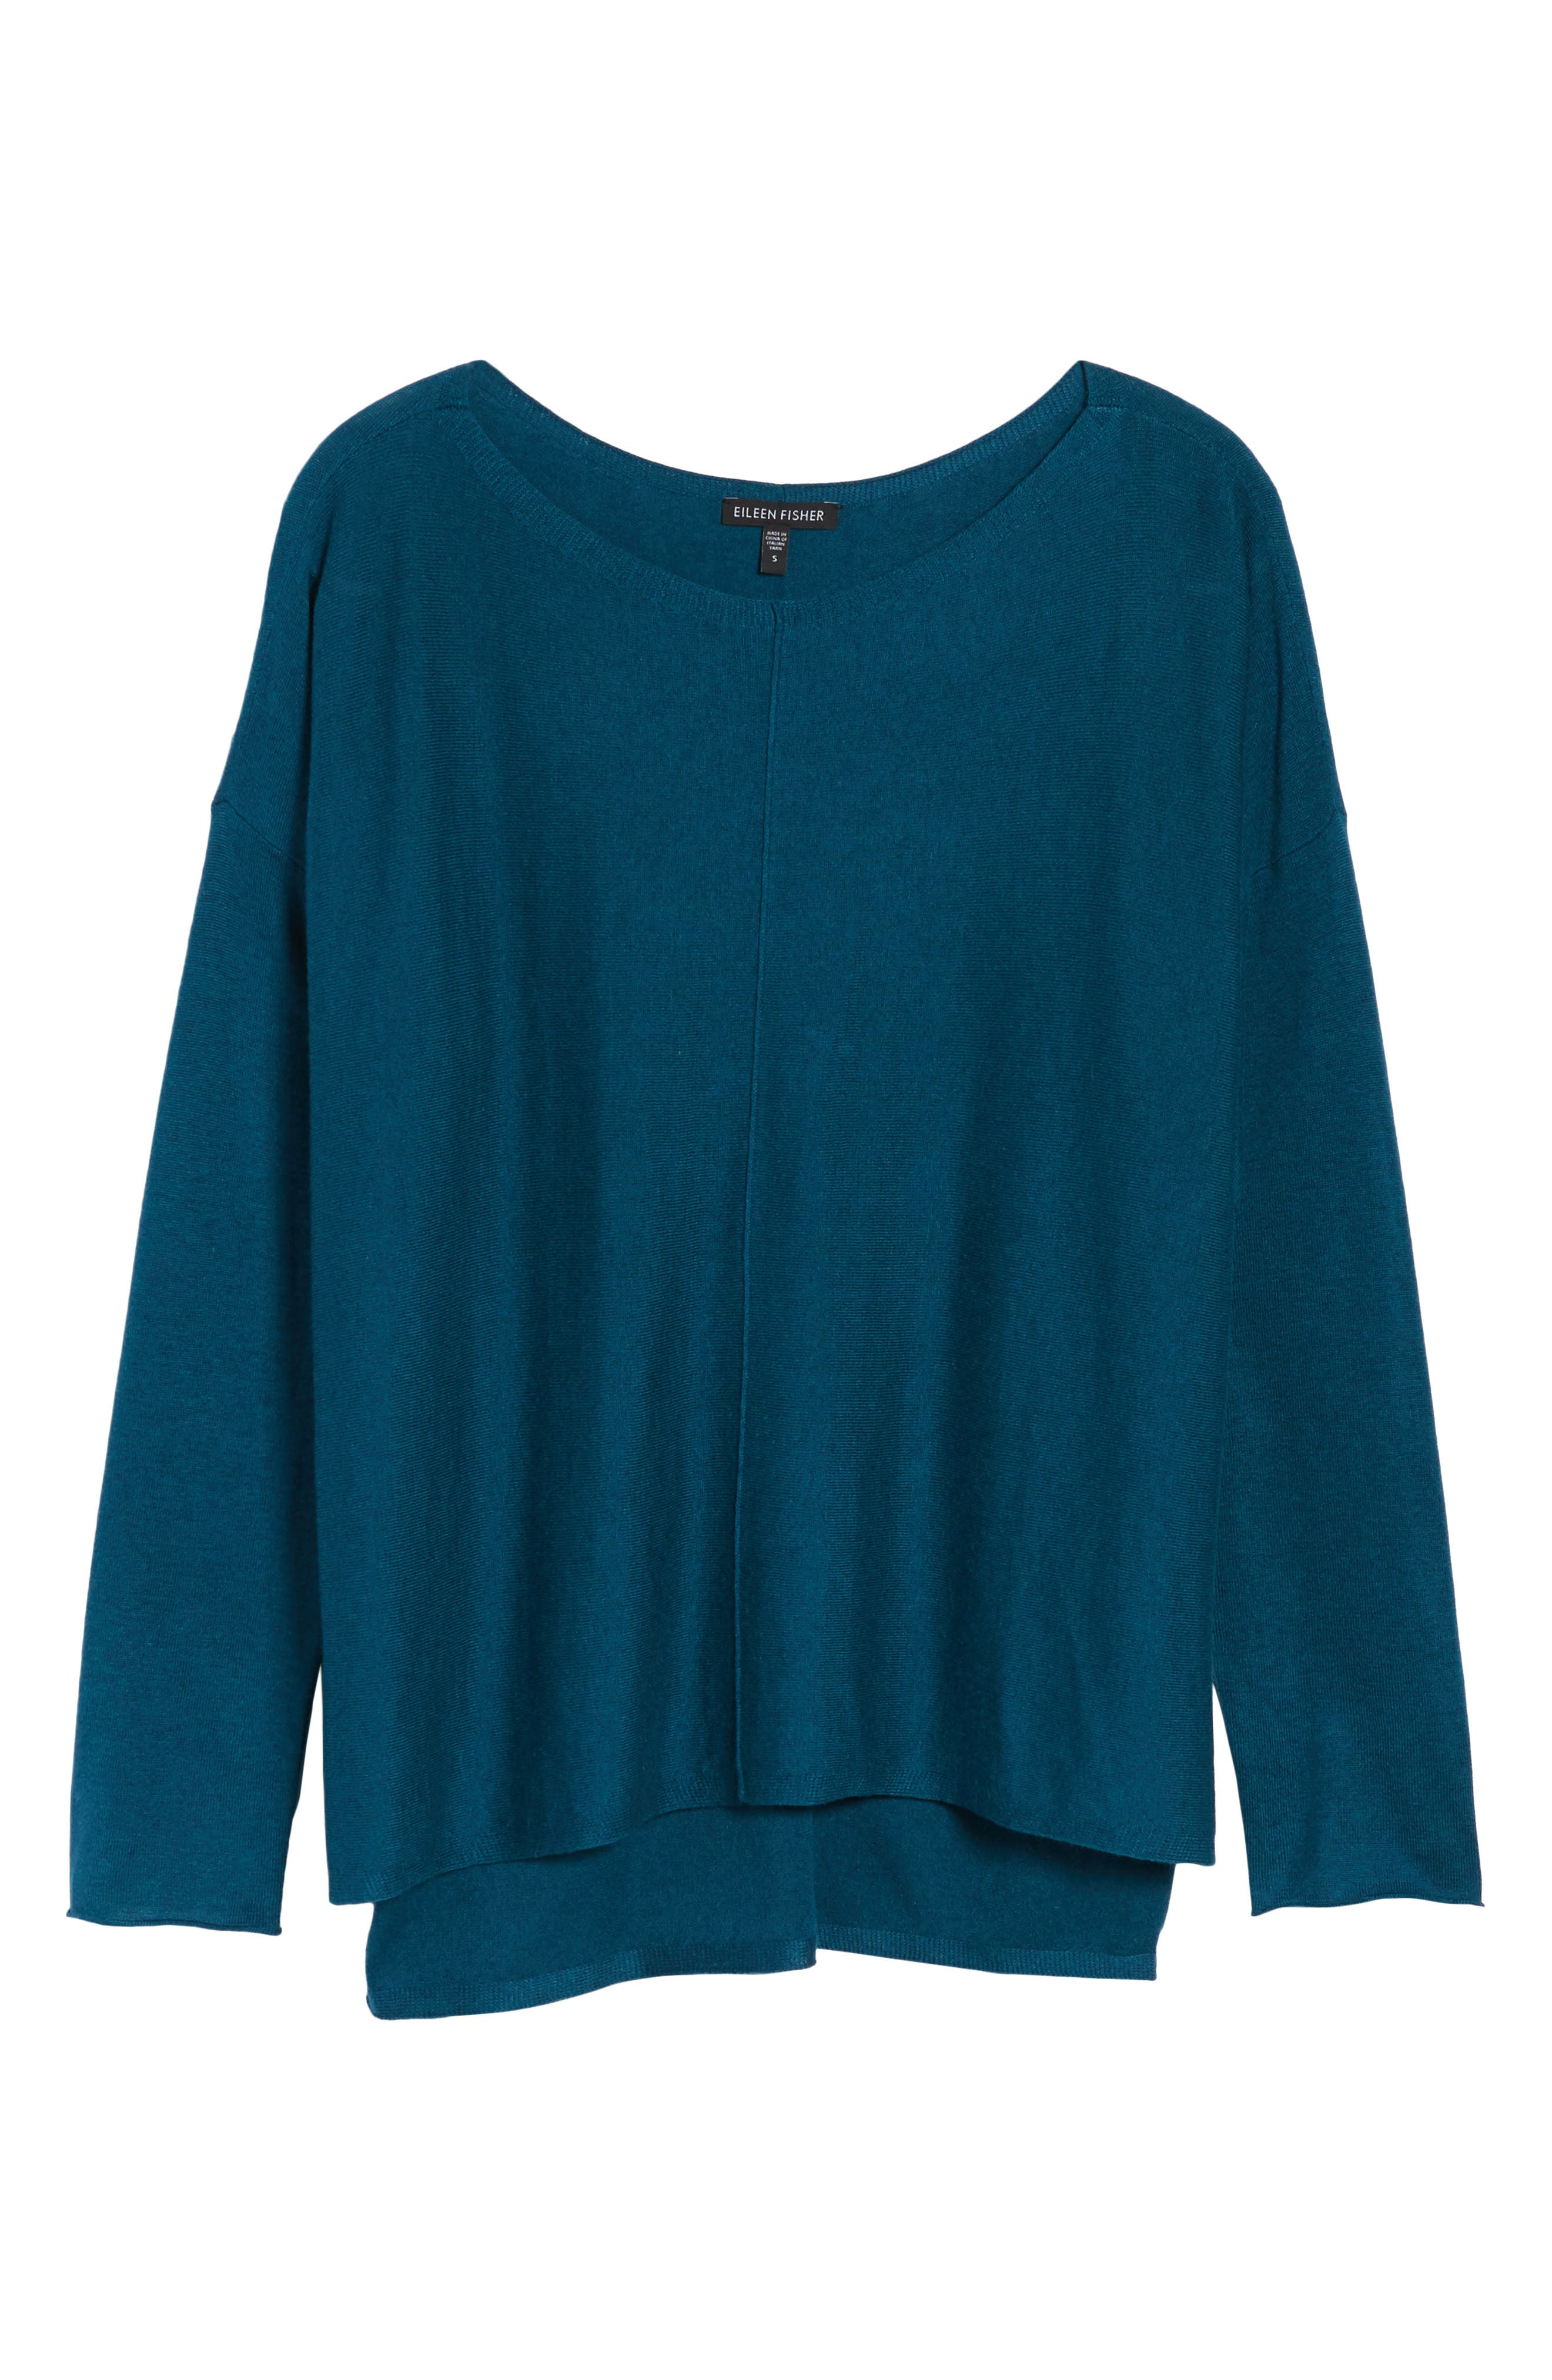 Tencel<sup>®</sup> Lyocell Blend High/Low Sweater,                             Alternate thumbnail 34, color,